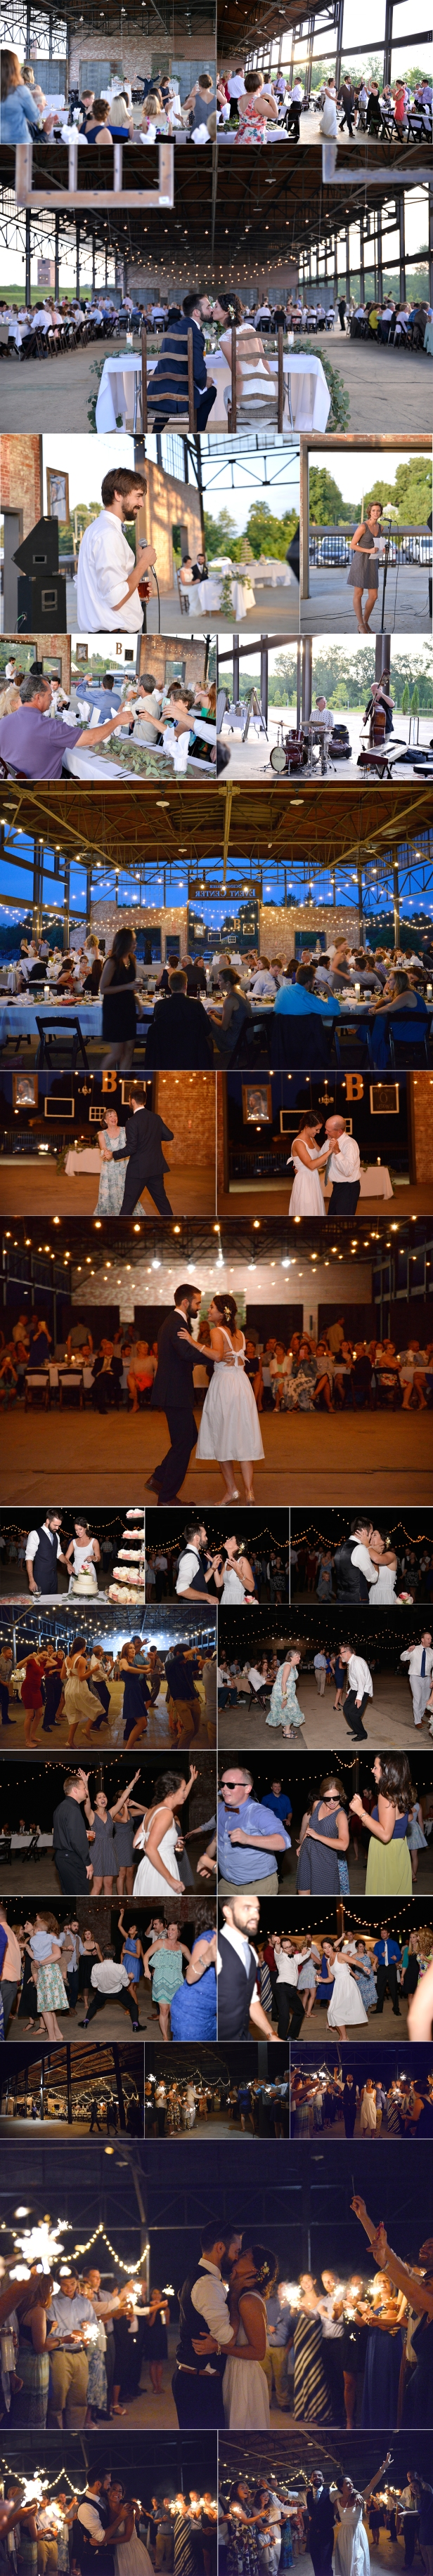 8-foundation park, mount vernon Ohio wedding